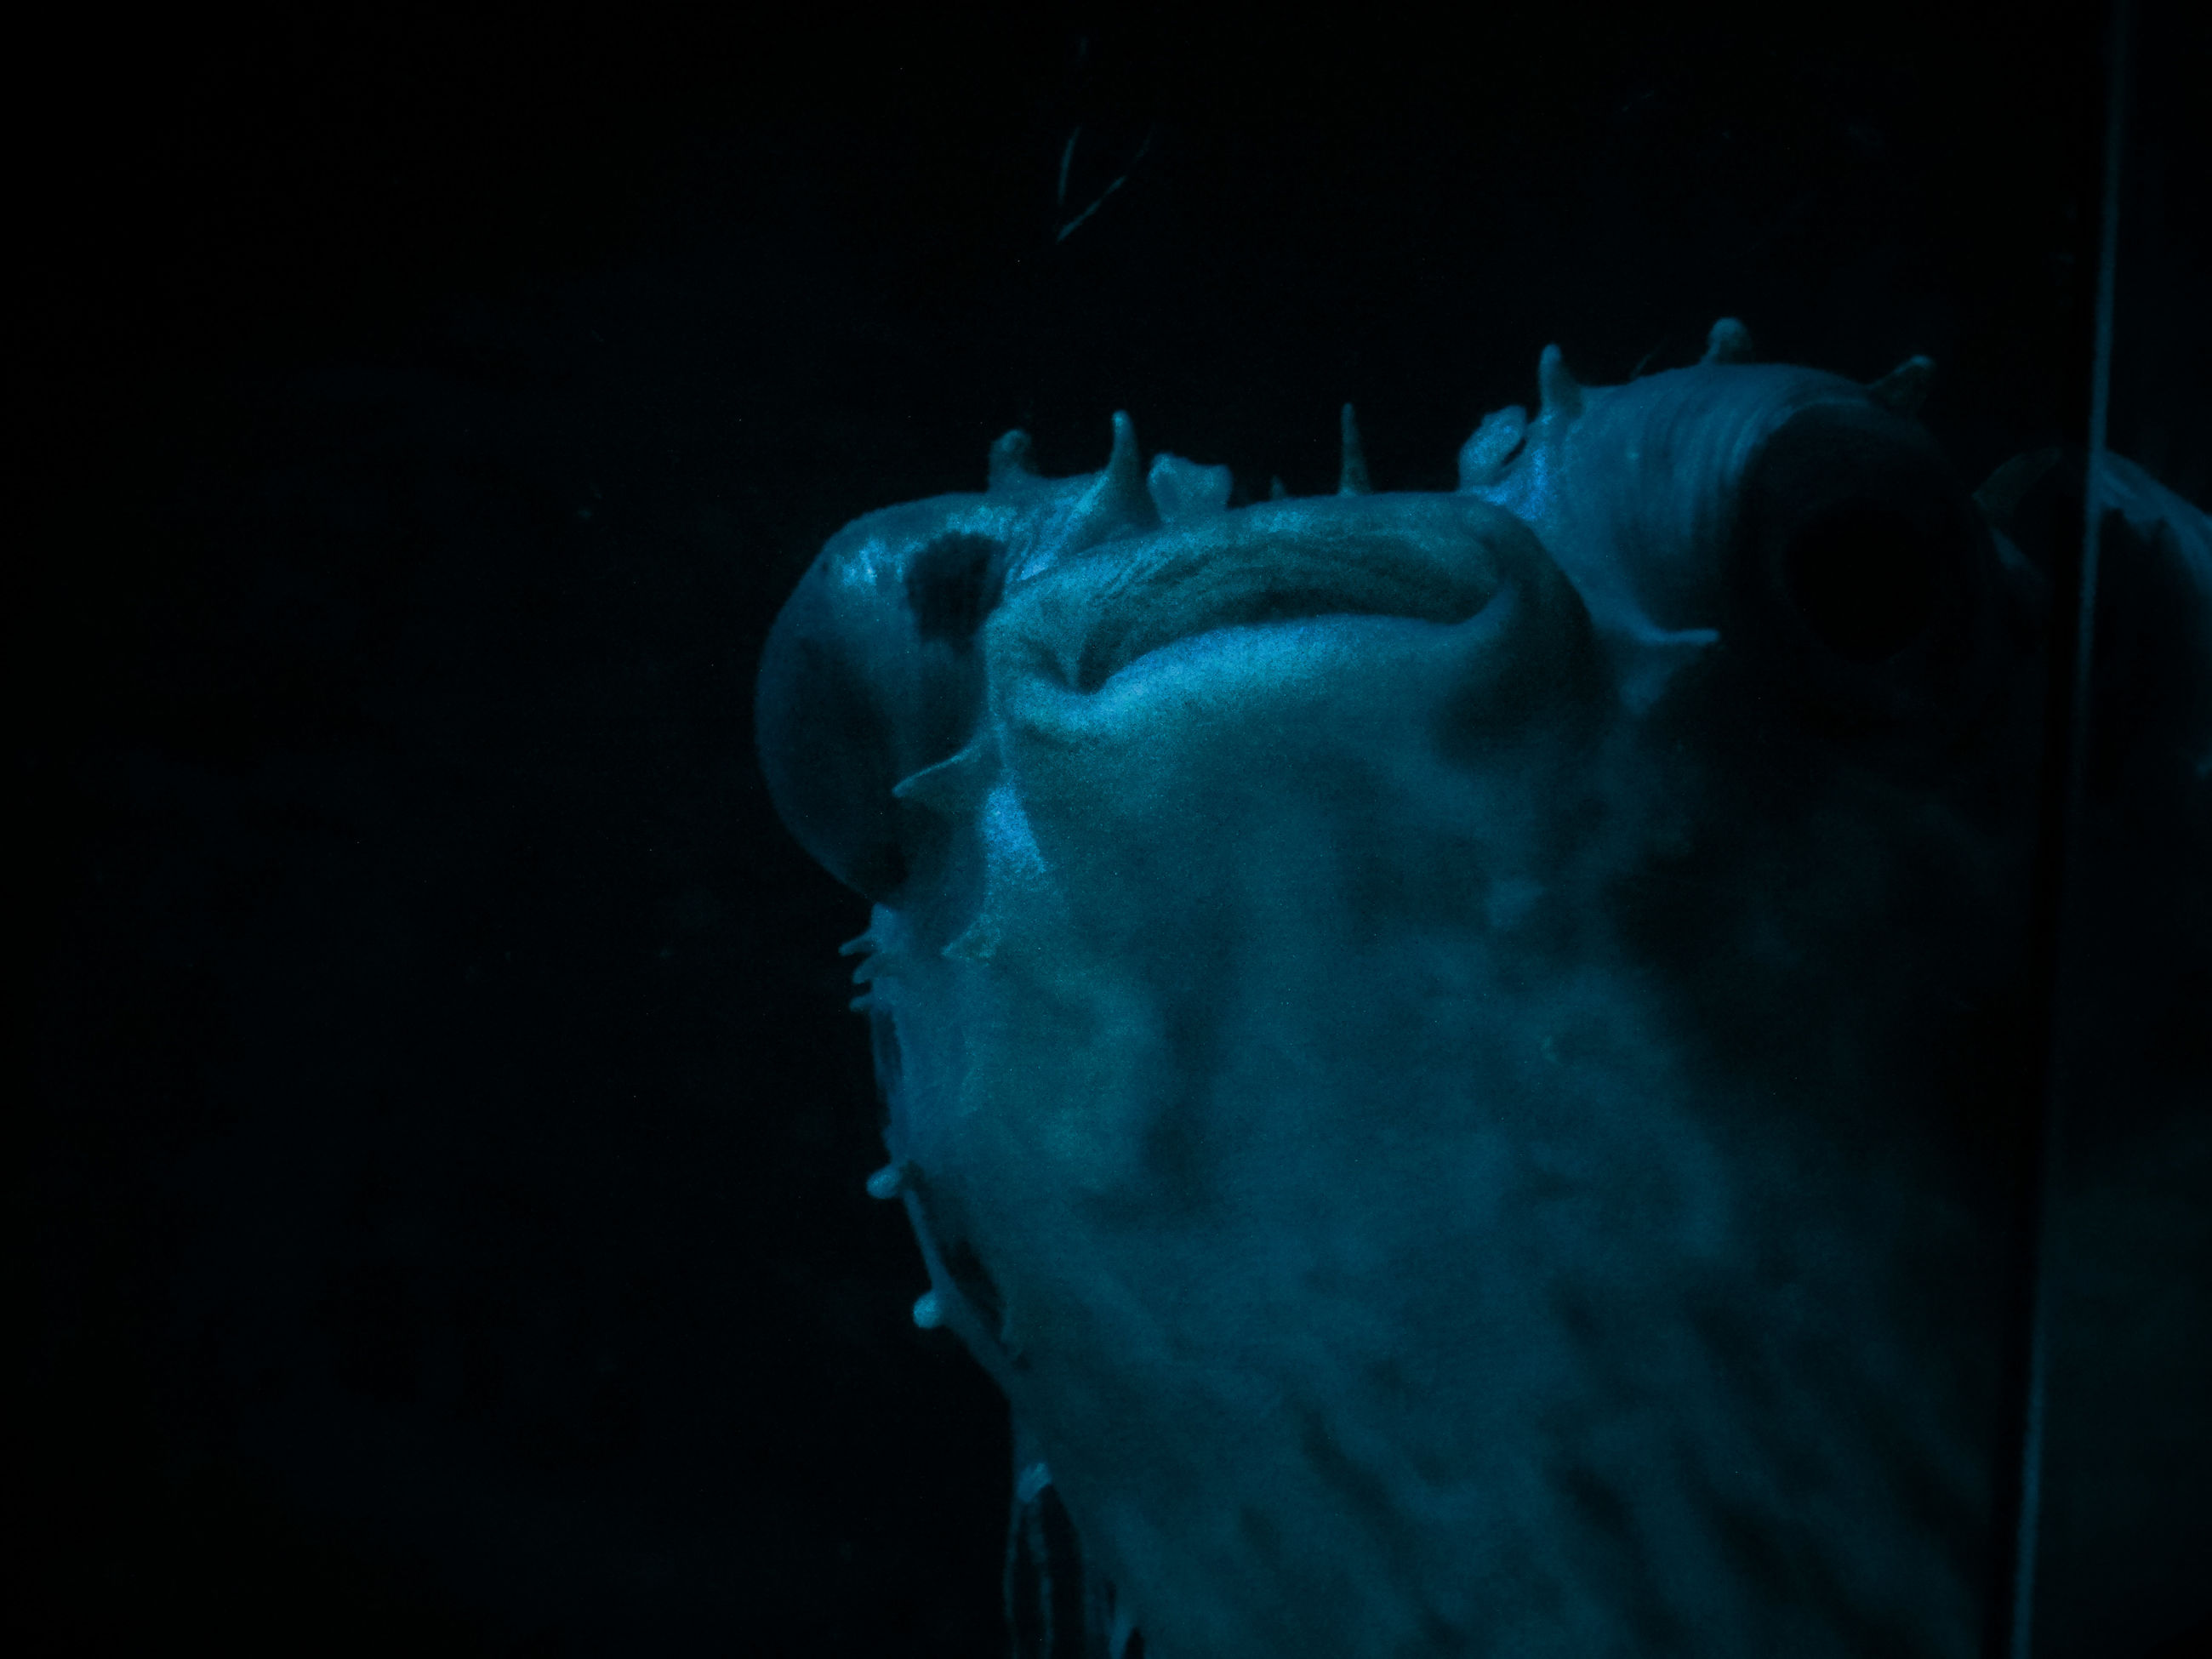 mammal, black background, close-up, blue, animal head, no people, animal body part, nature, dark, beauty in nature